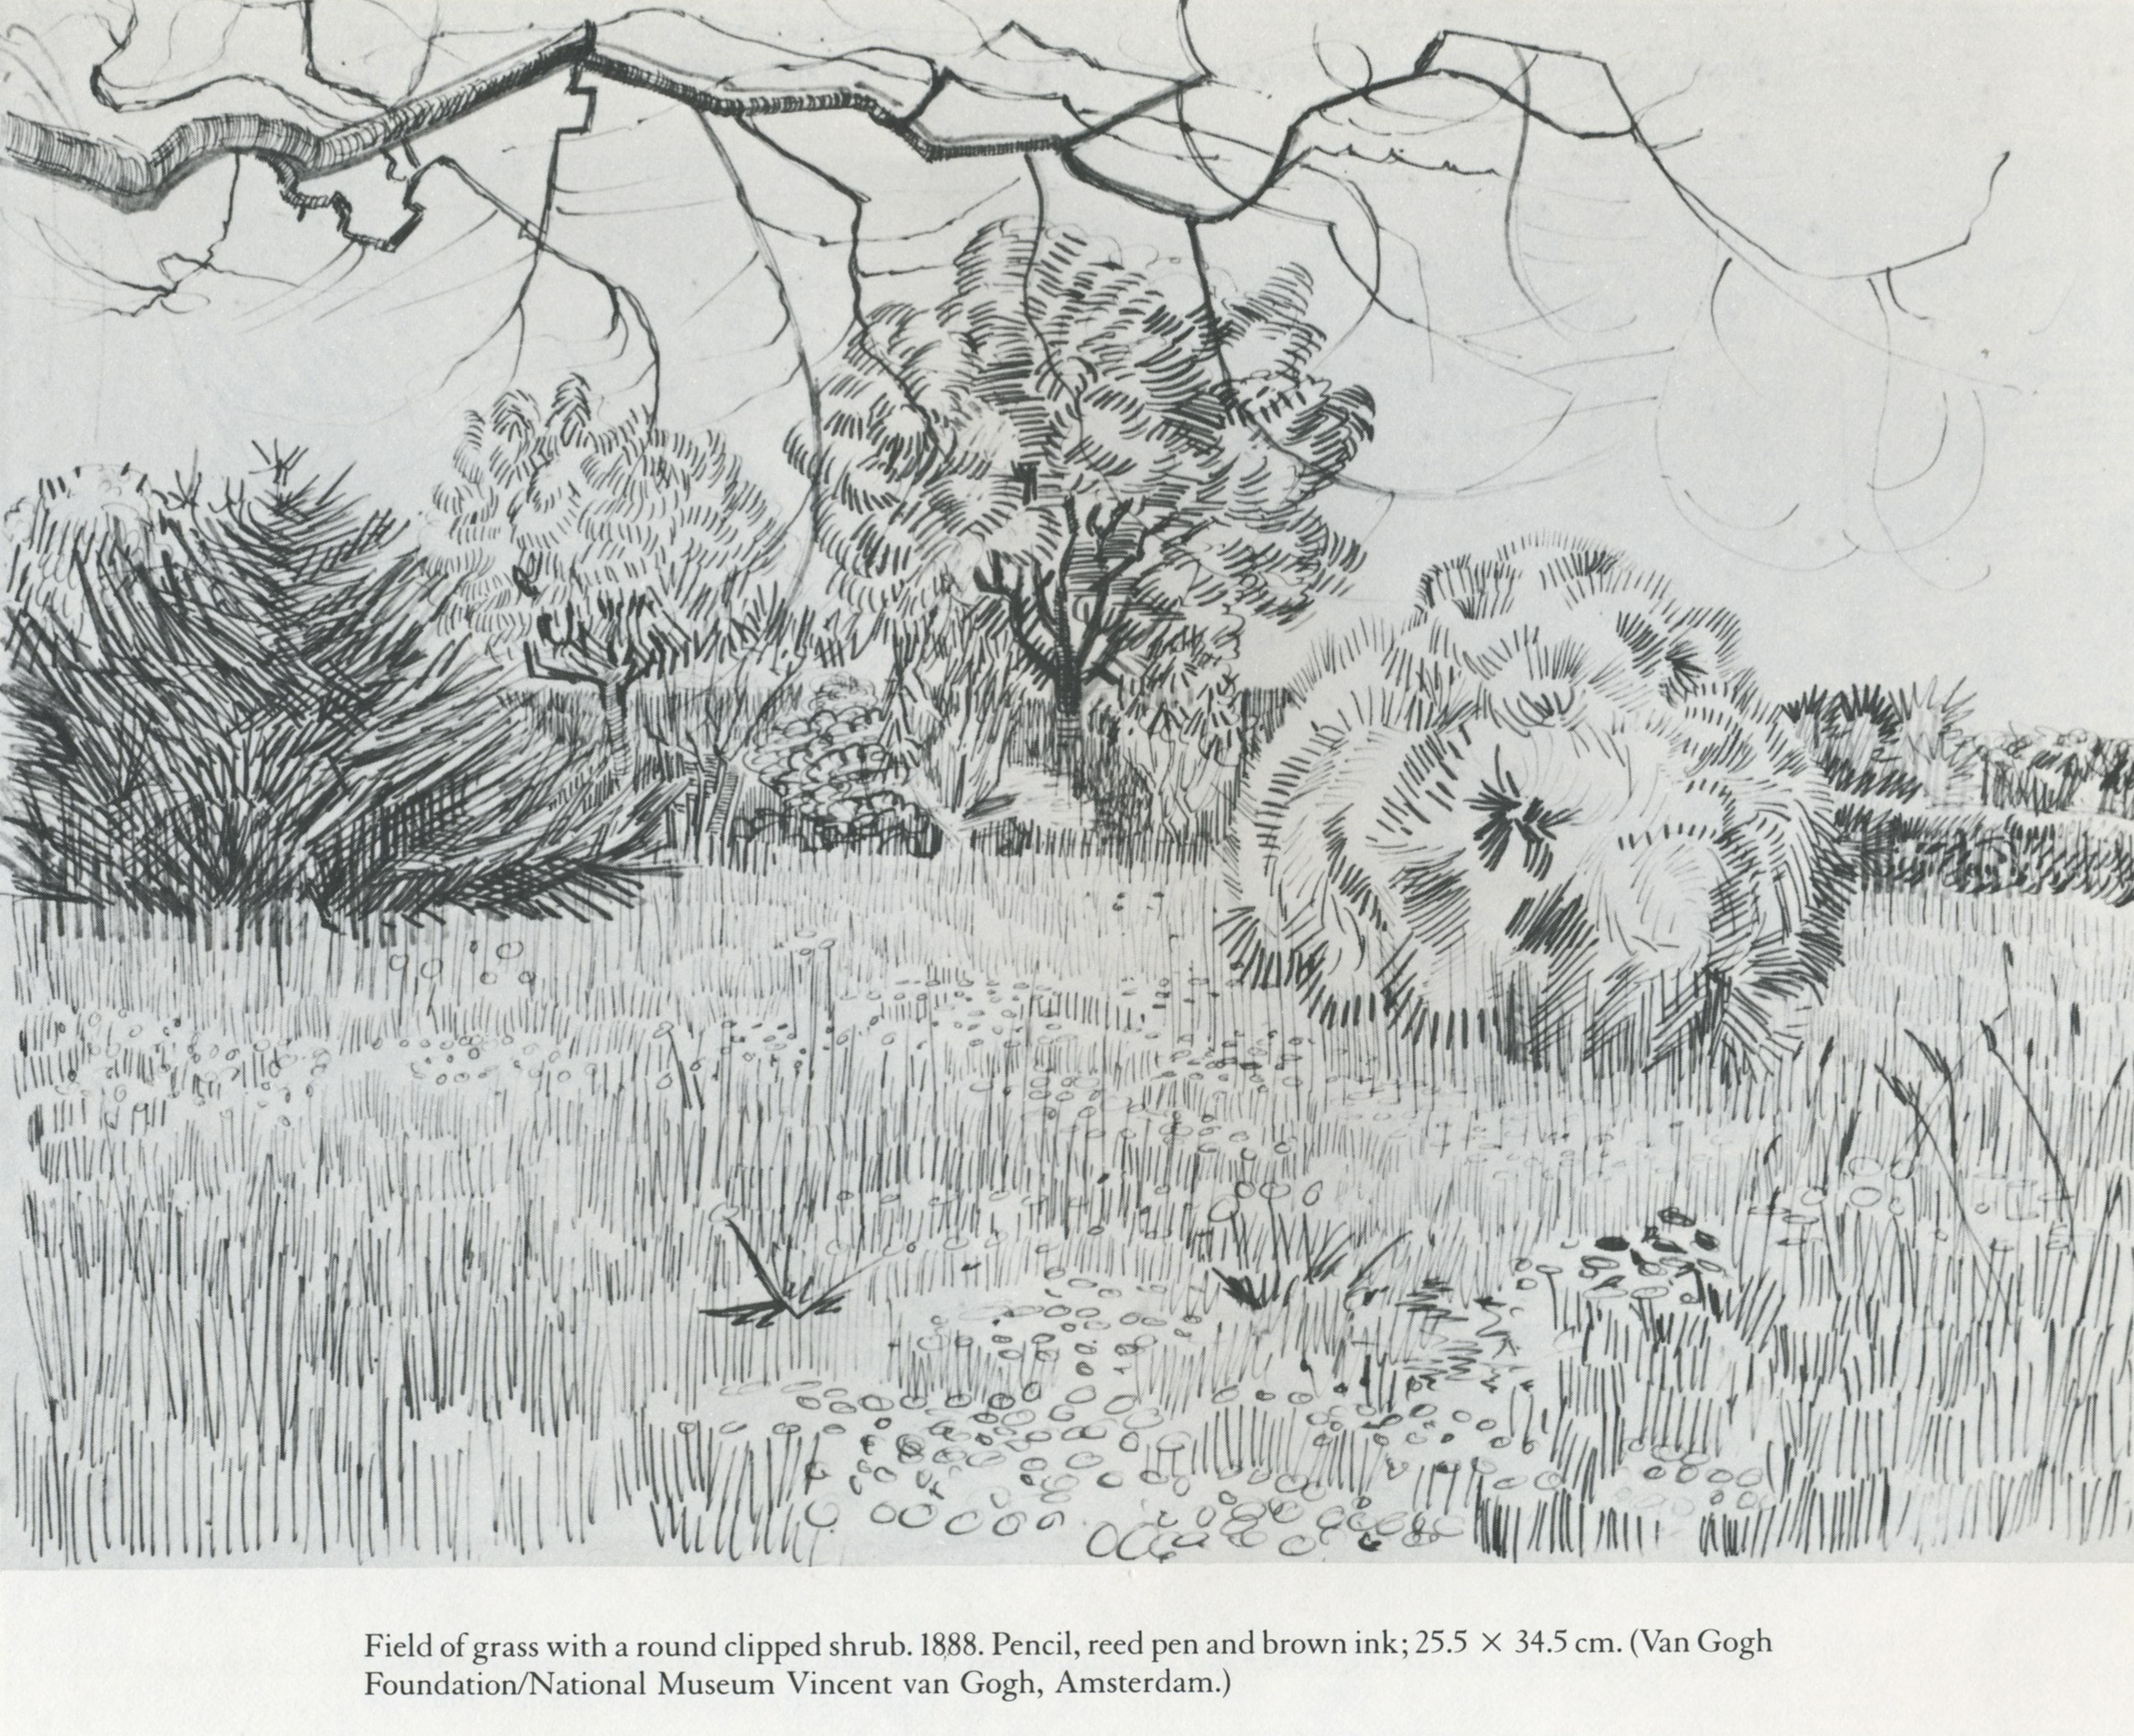 Using Lines In Drawing : Pencil sketches of nature sceneries landscapes